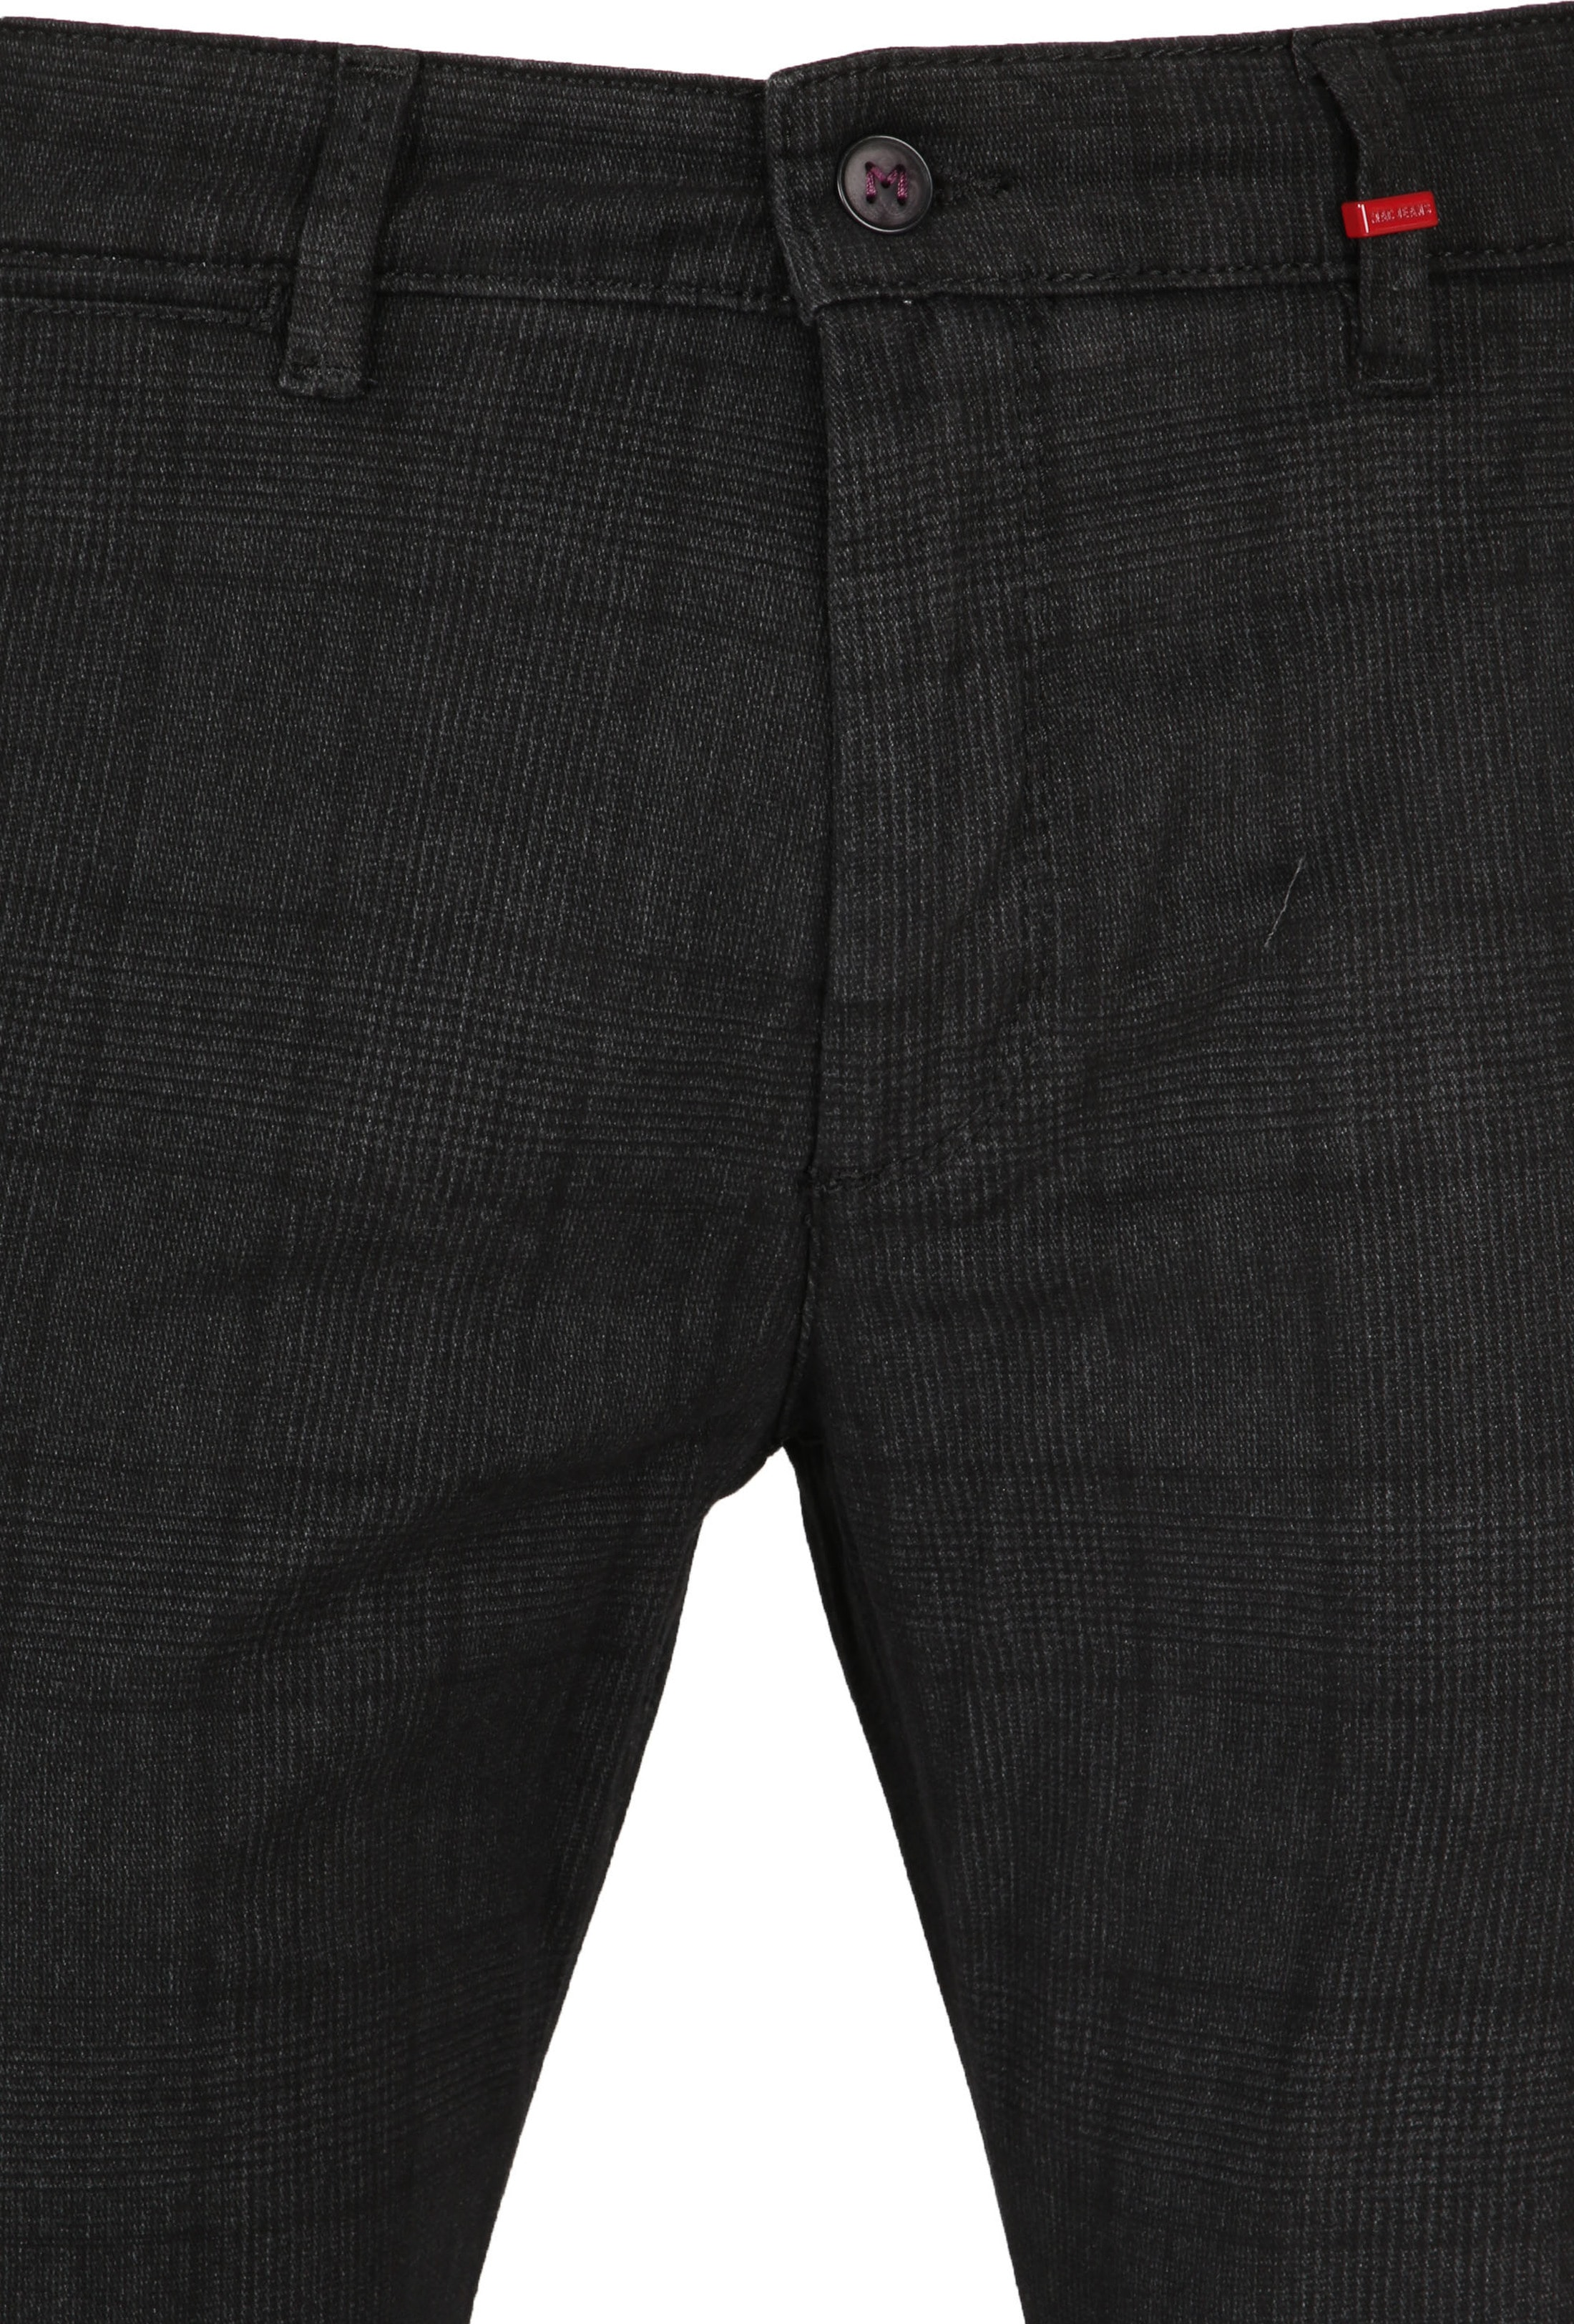 Mac Broek Lennox Dark Grey Pane photo 1